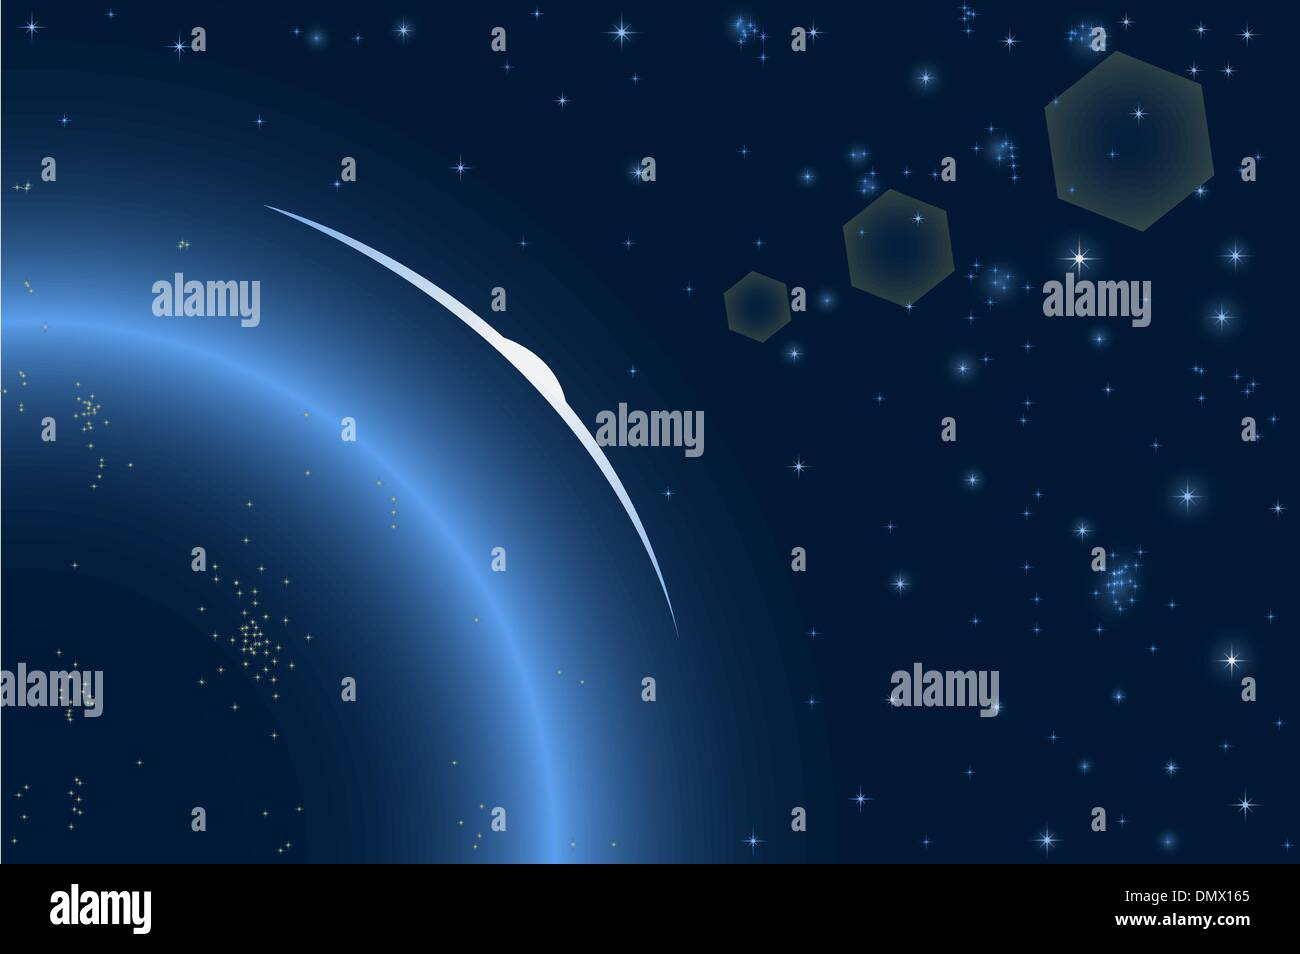 Vector illustration of space - Stock Image